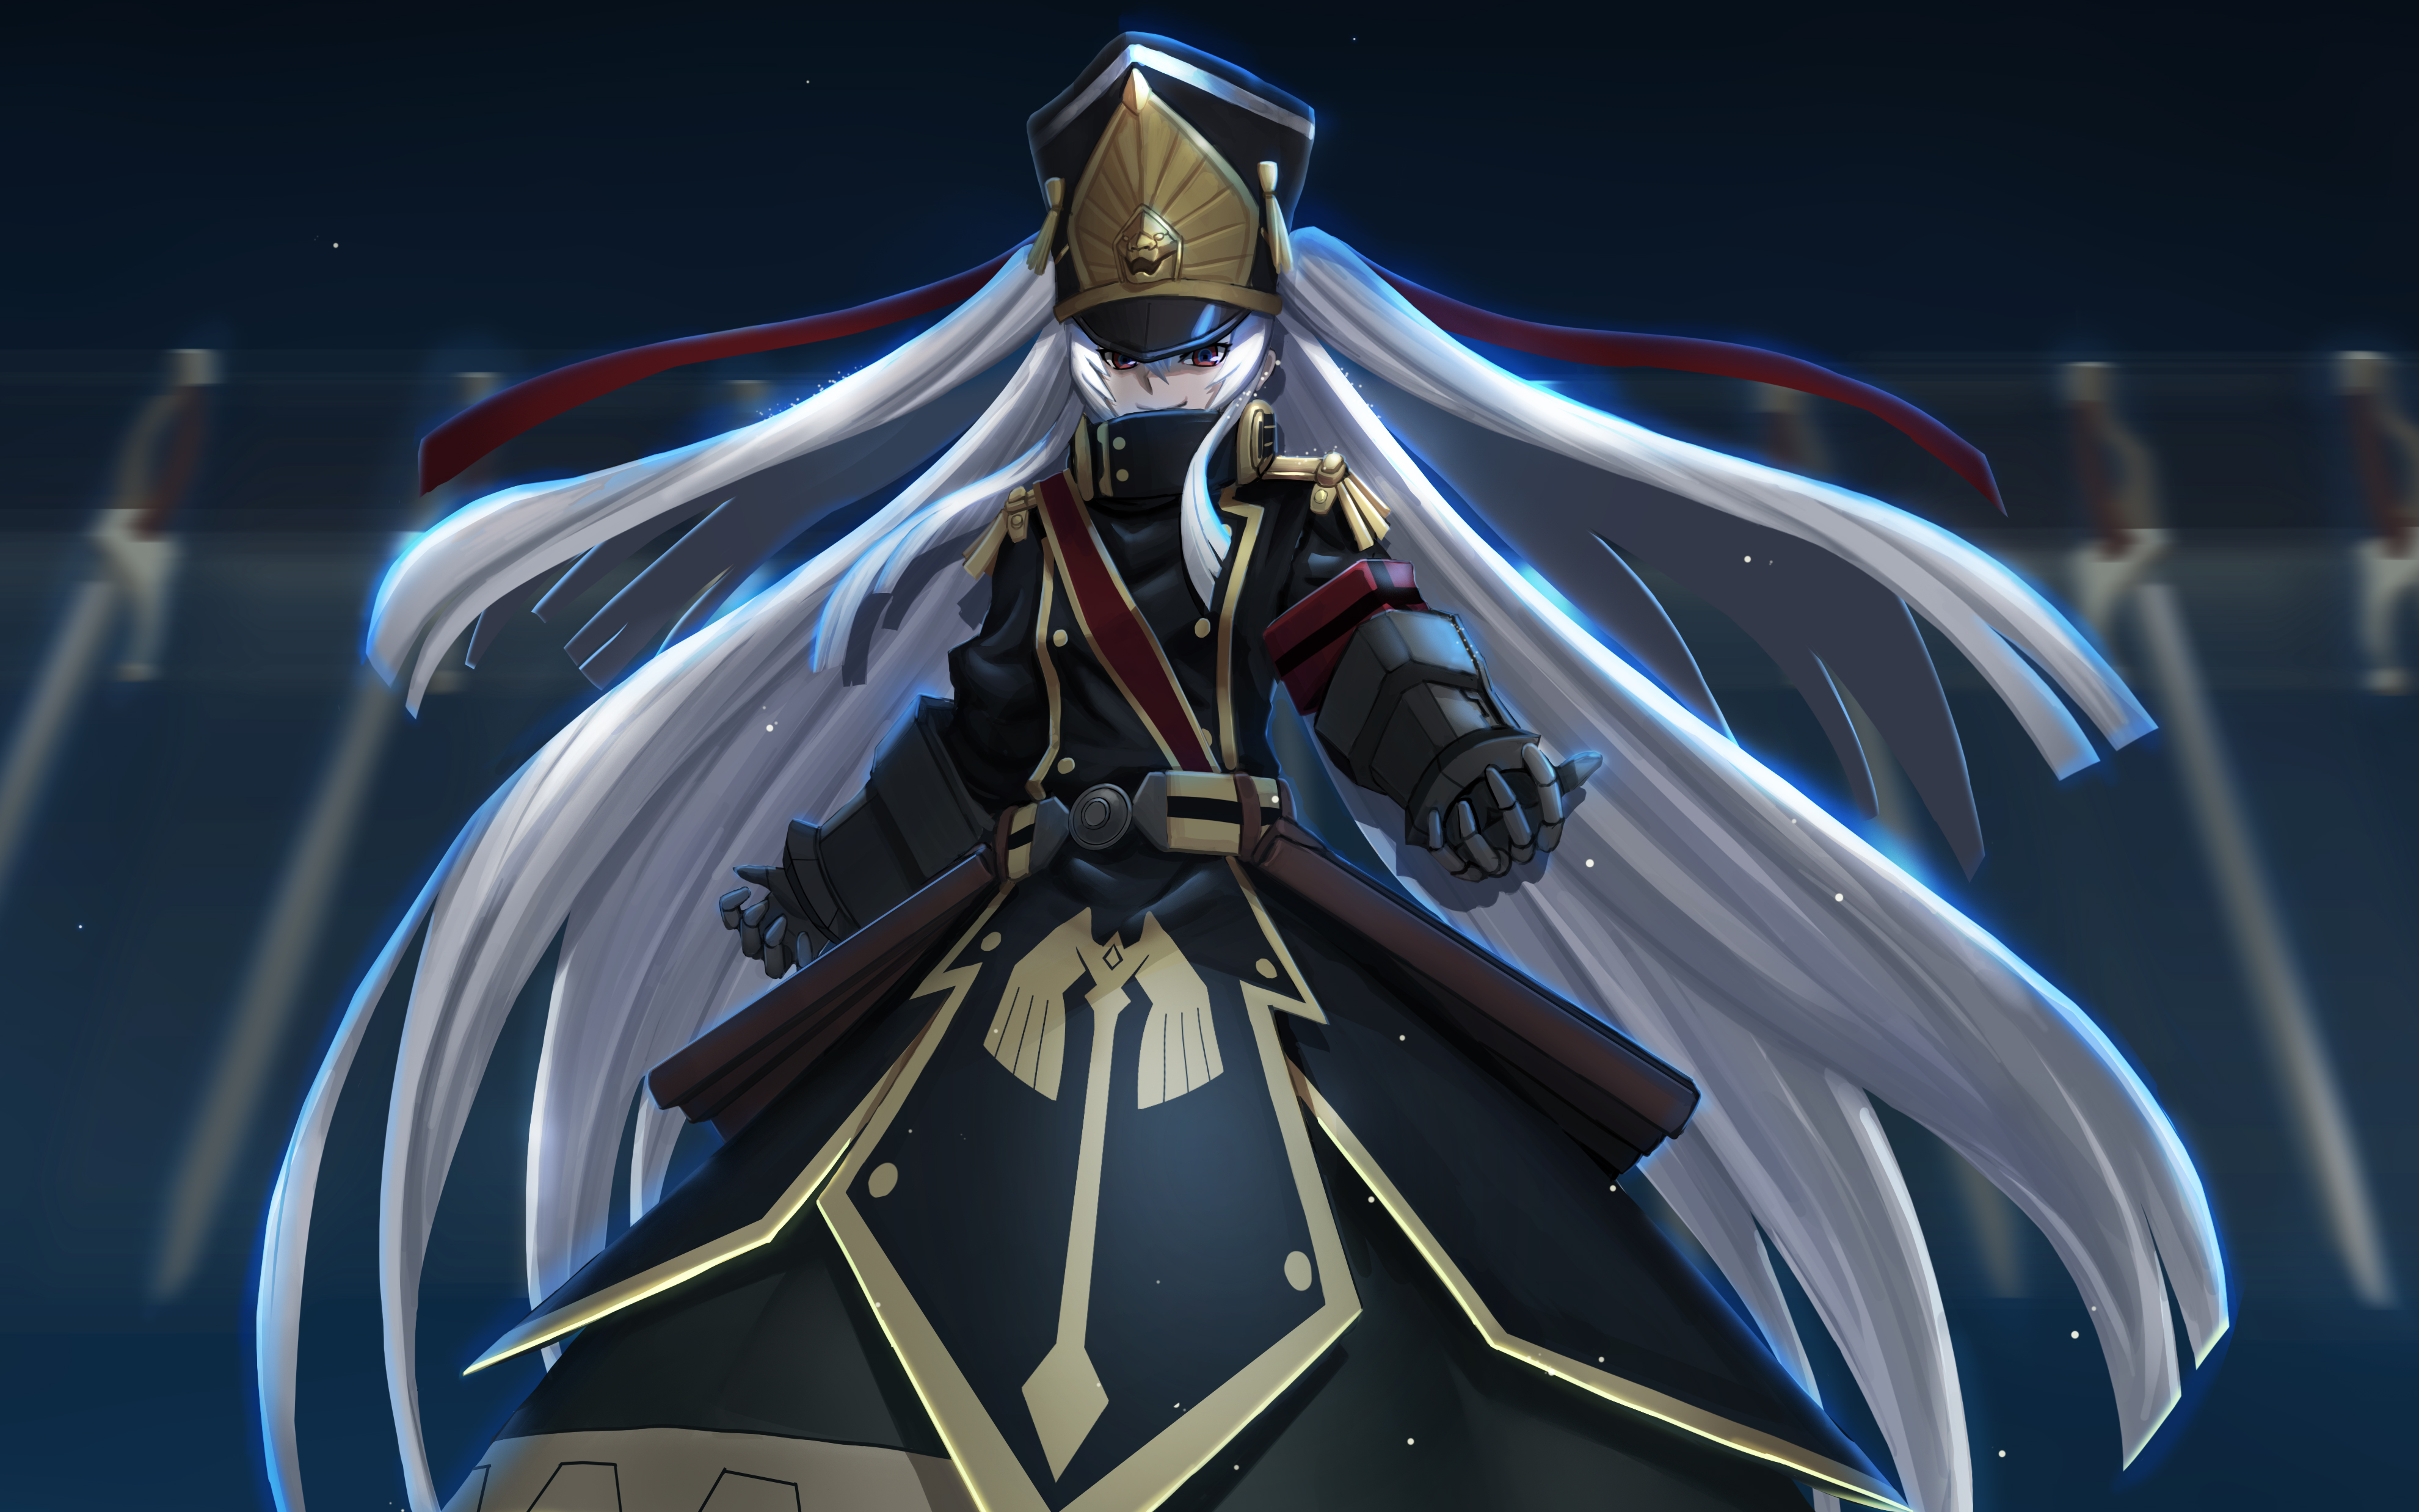 Re:Creators 4k Ultra HD Wallpaper | Background Image | 3961x2476 | ID:825918 - Wallpaper Abyss